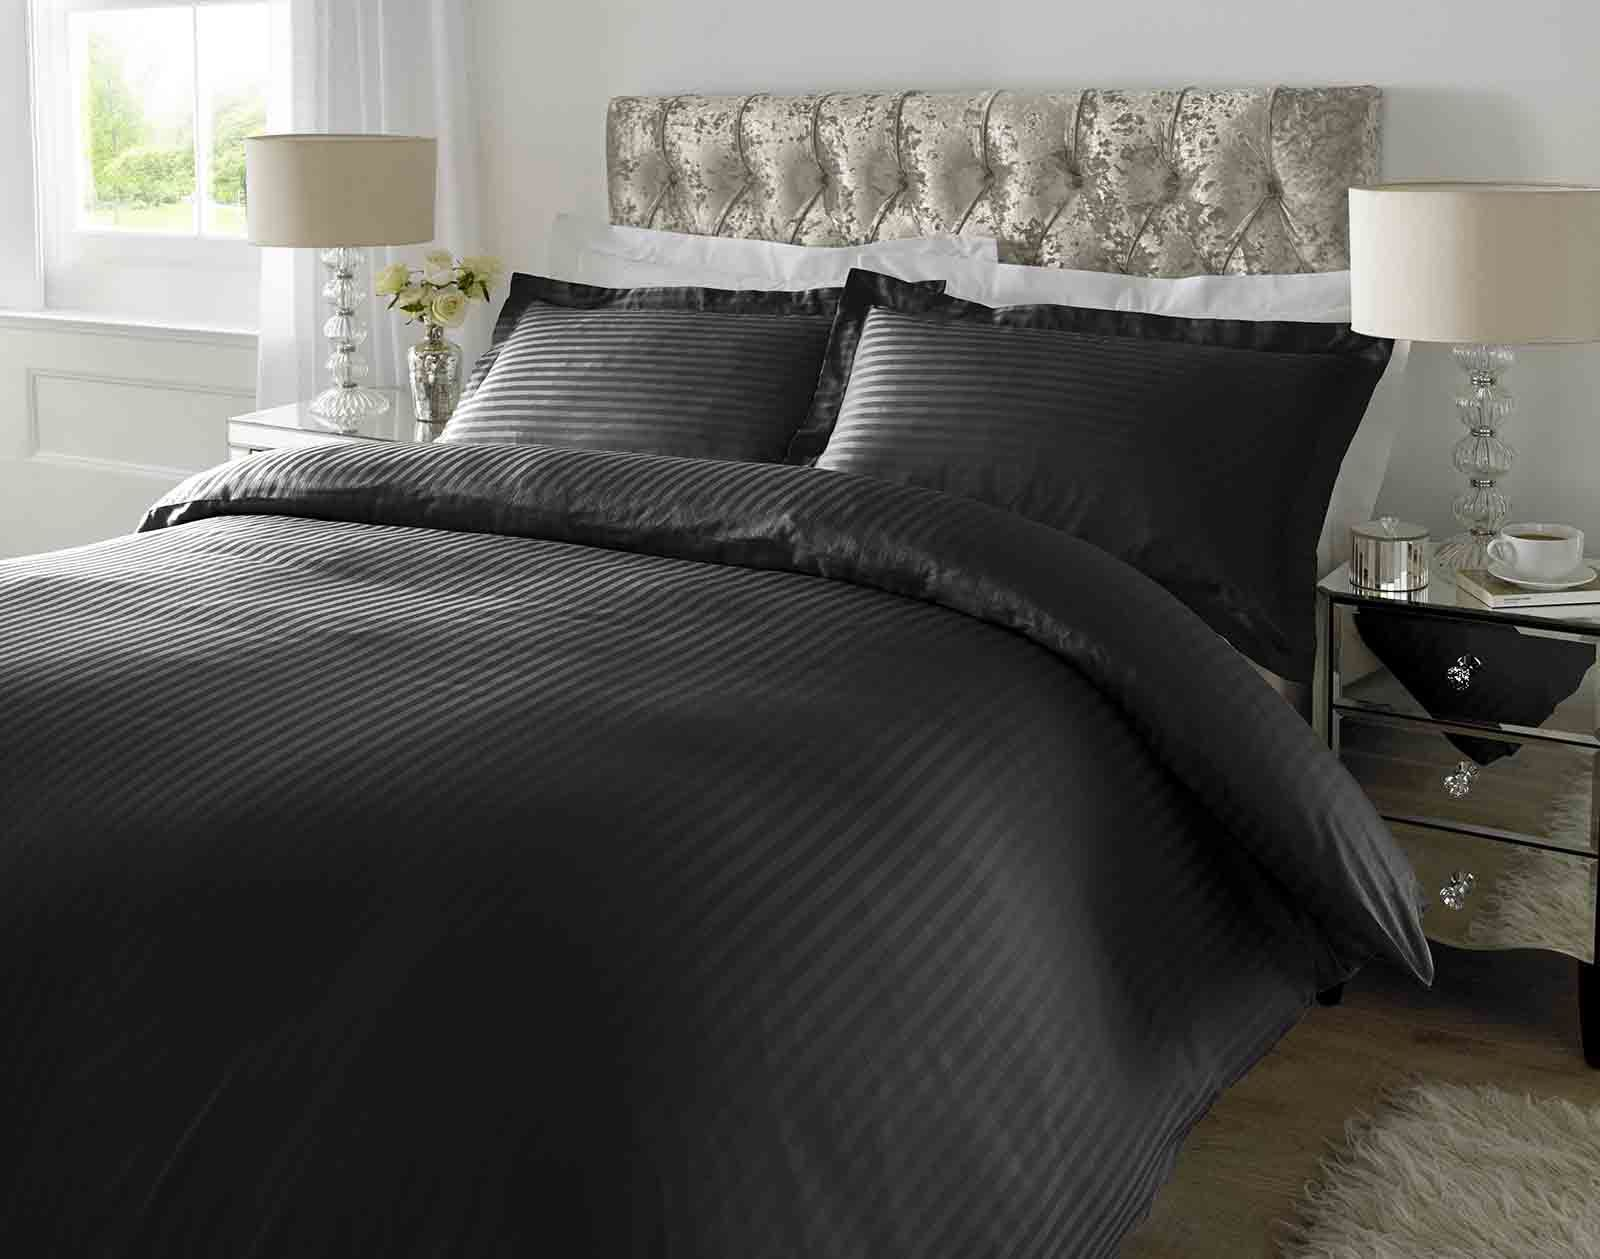 Hotel Quality Luxury Satin Stripe Duvet Cover Single Double King